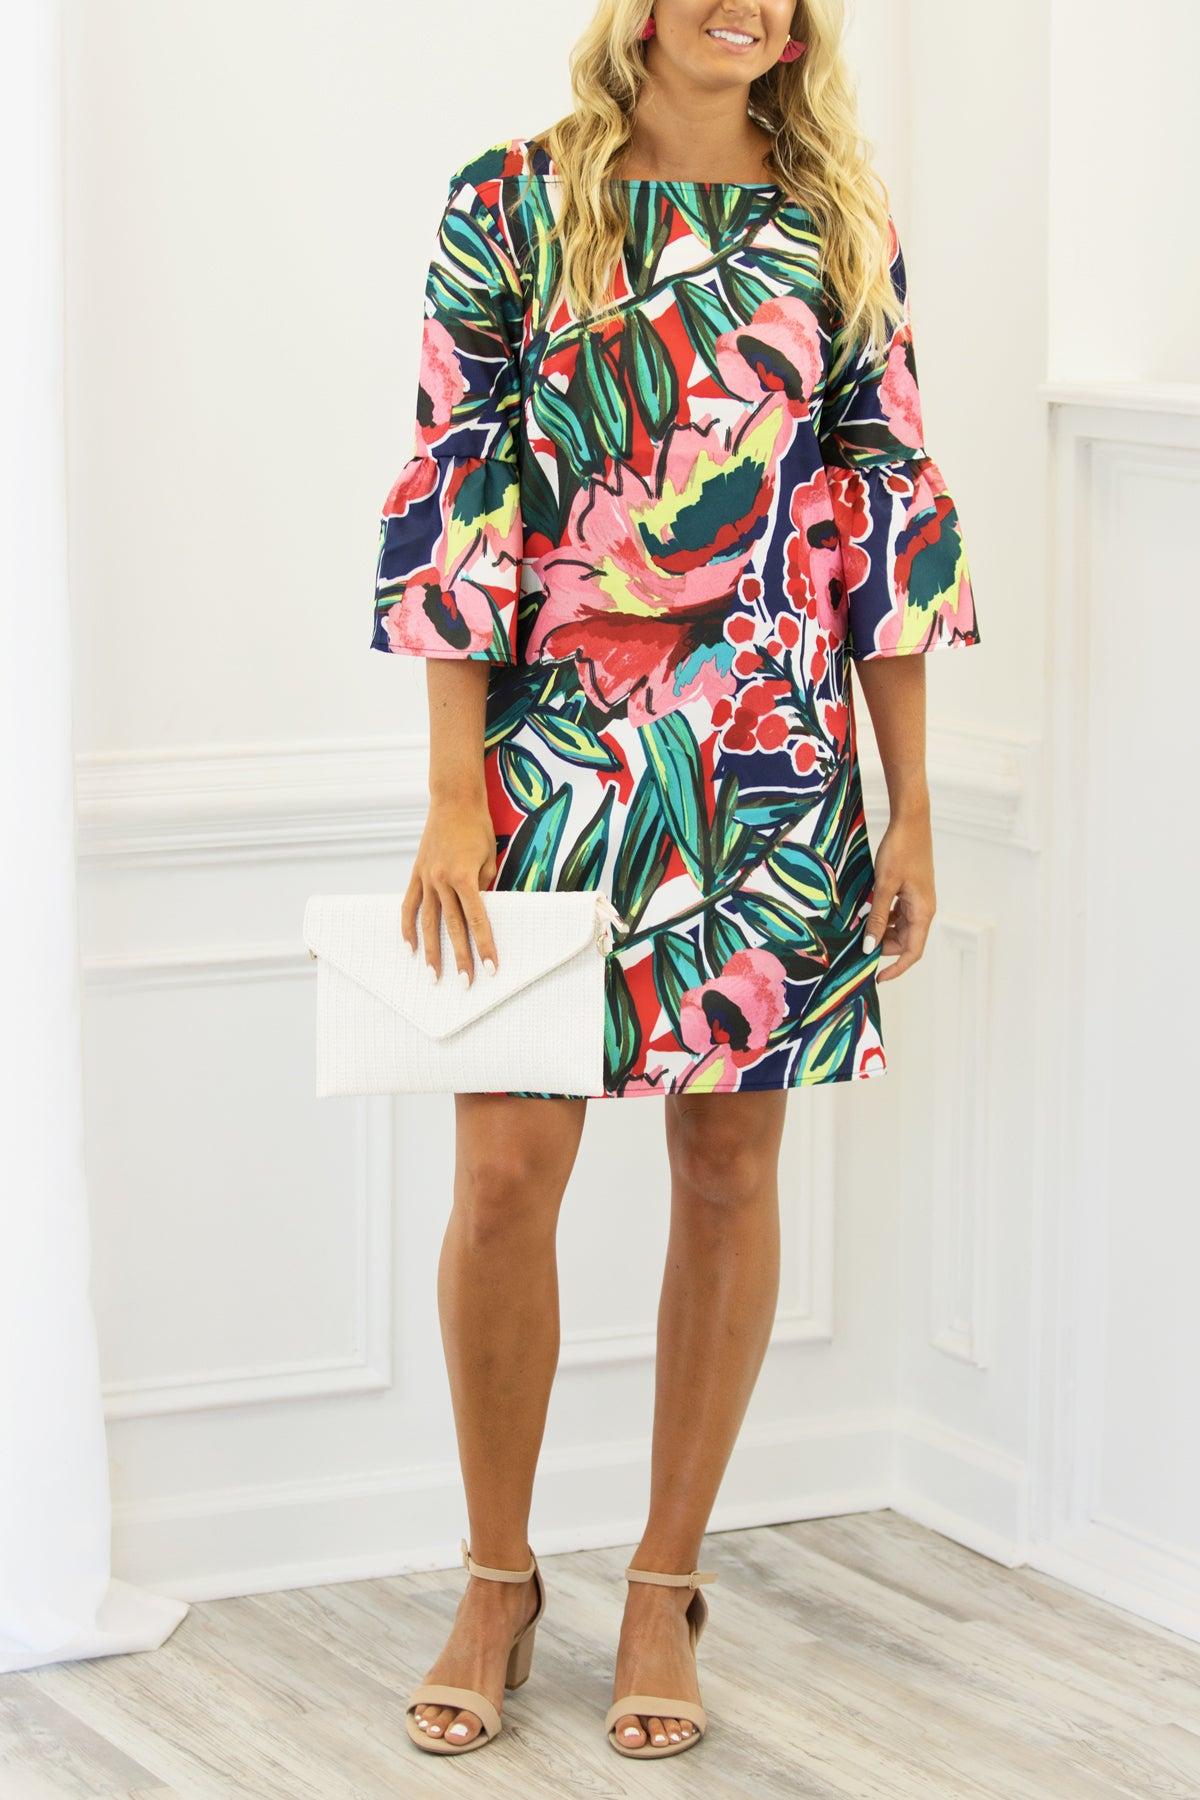 Sophisticated Floral Dress